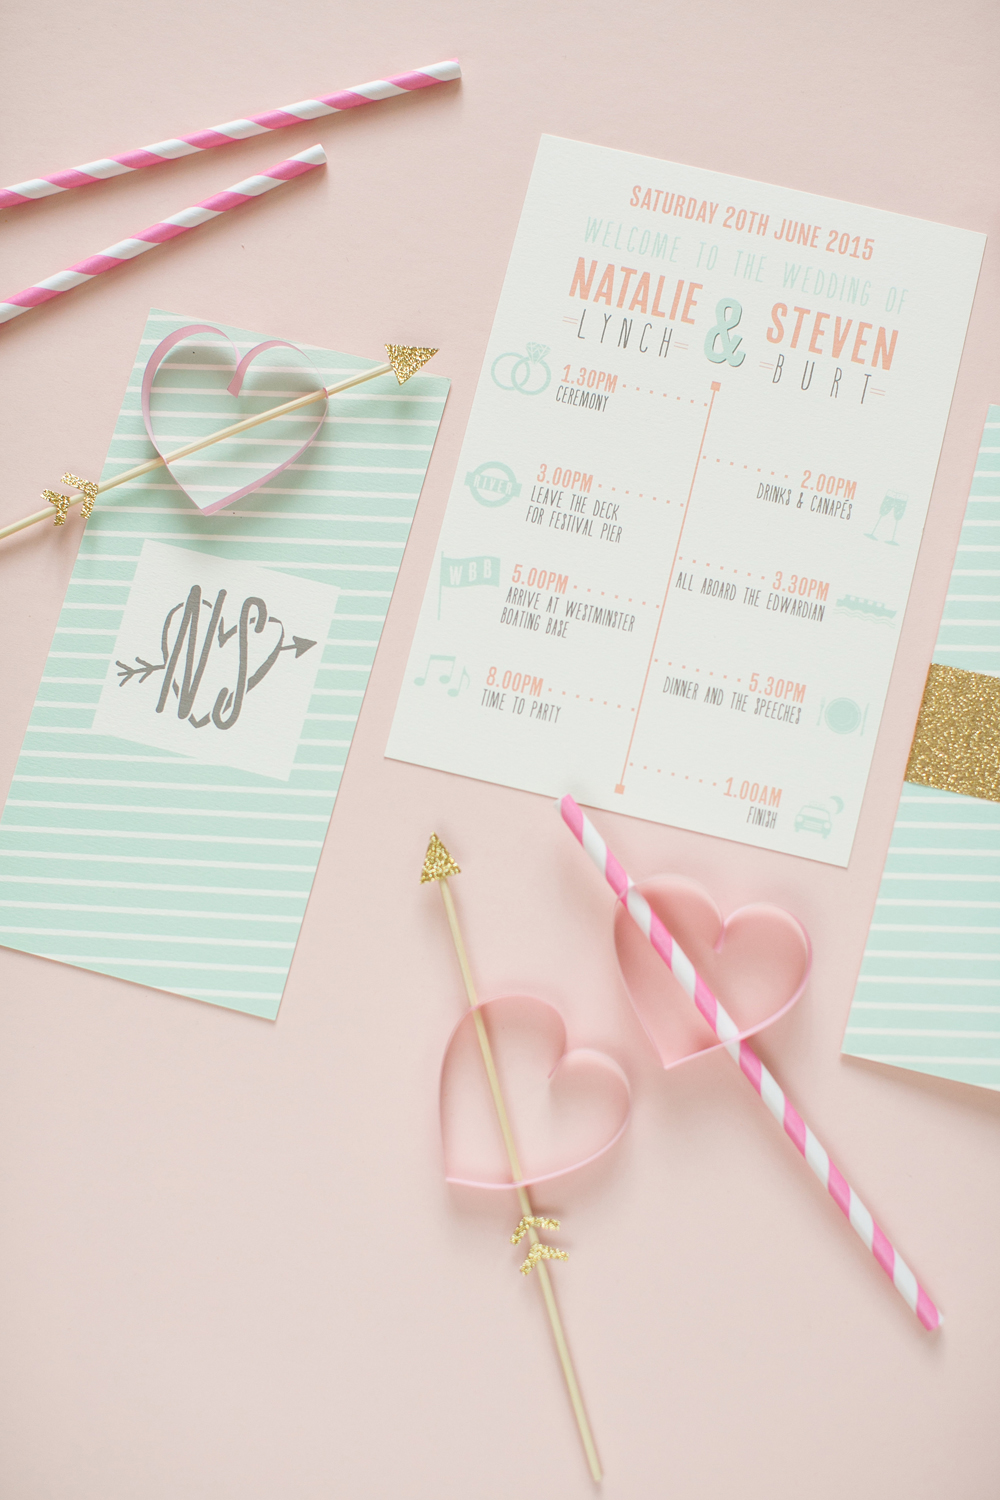 Natalie and Steve's bespoke peach and mint stationery for their wedding at the National Theatre